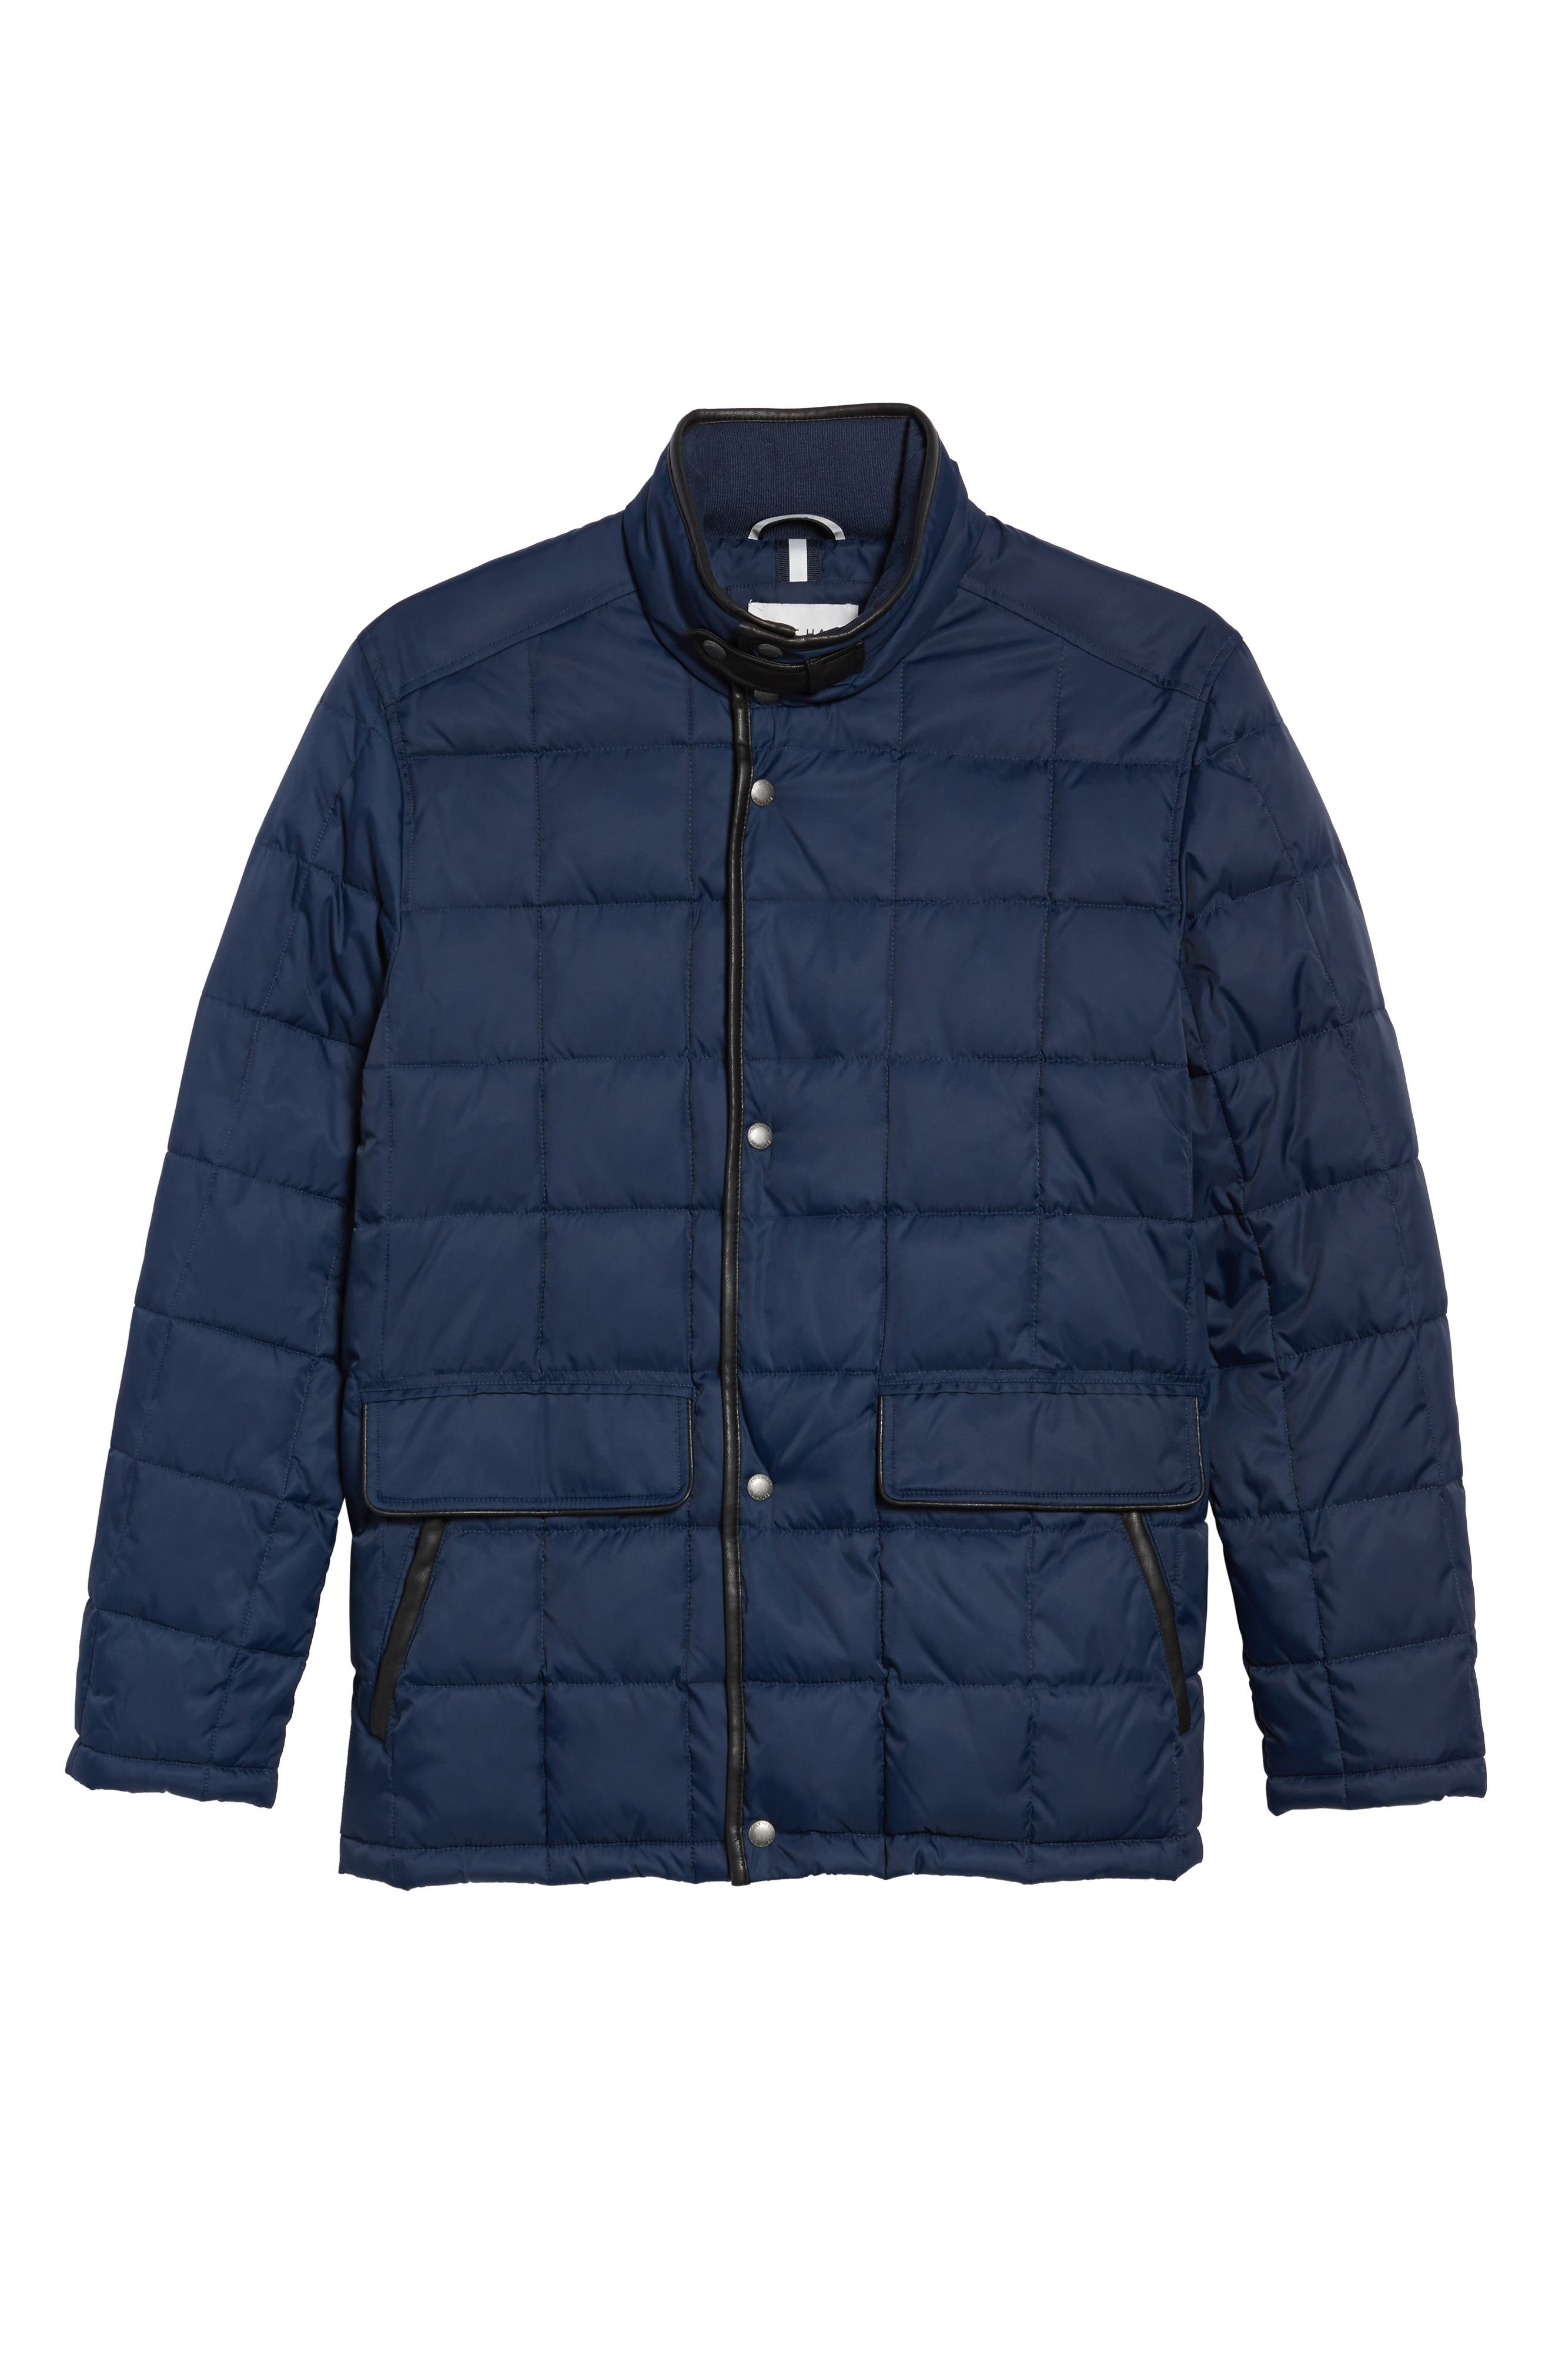 Box Quilted Jacket,                             Alternate thumbnail 5, color,                             NAVY